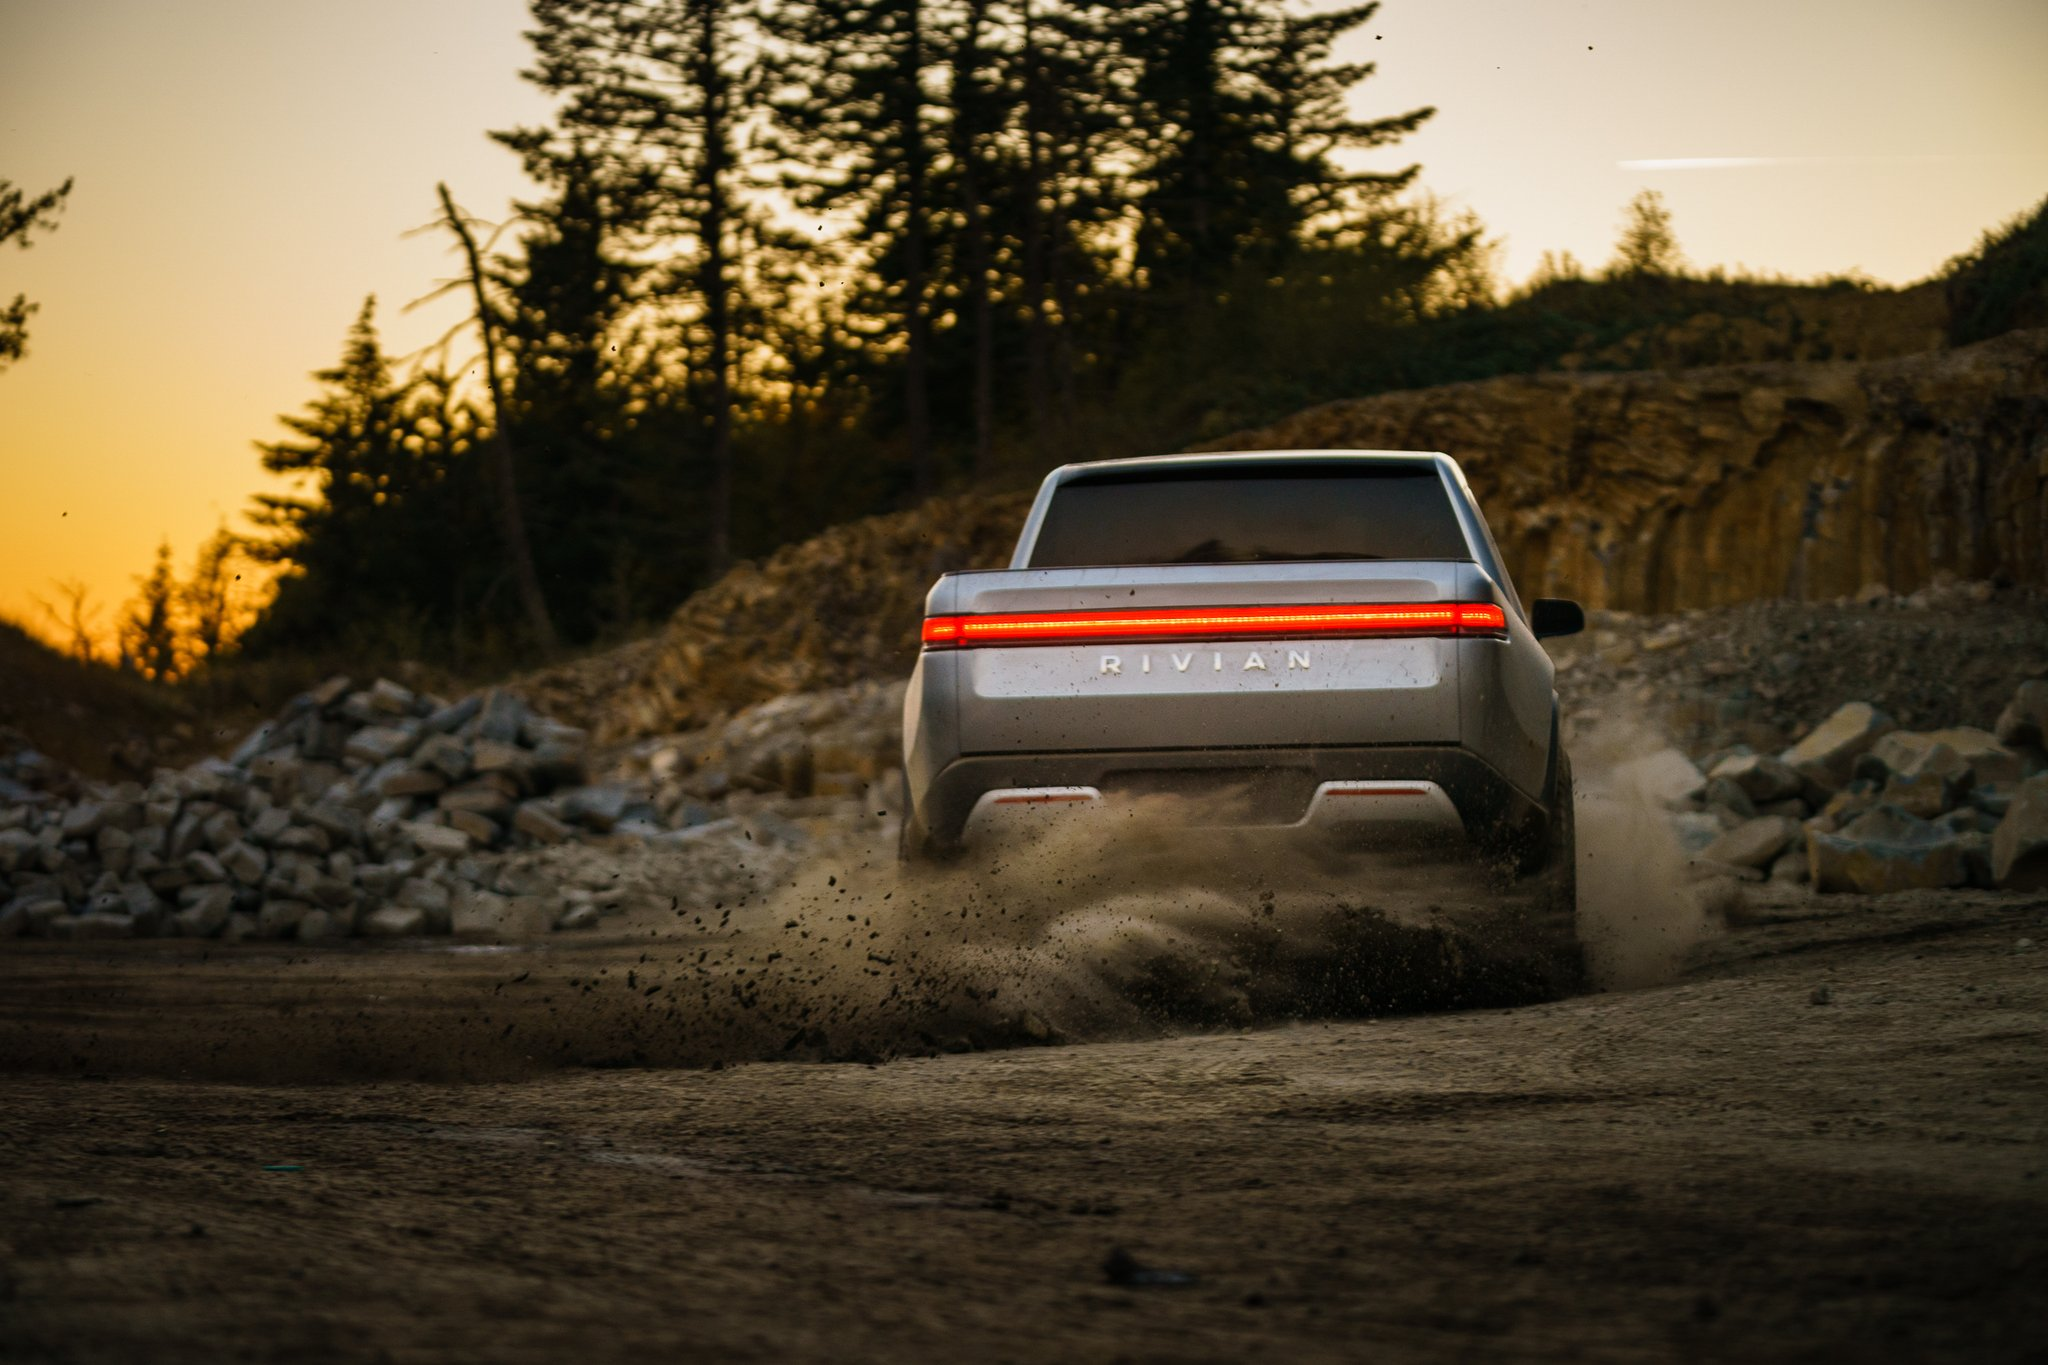 Rivian R1T in the dirt